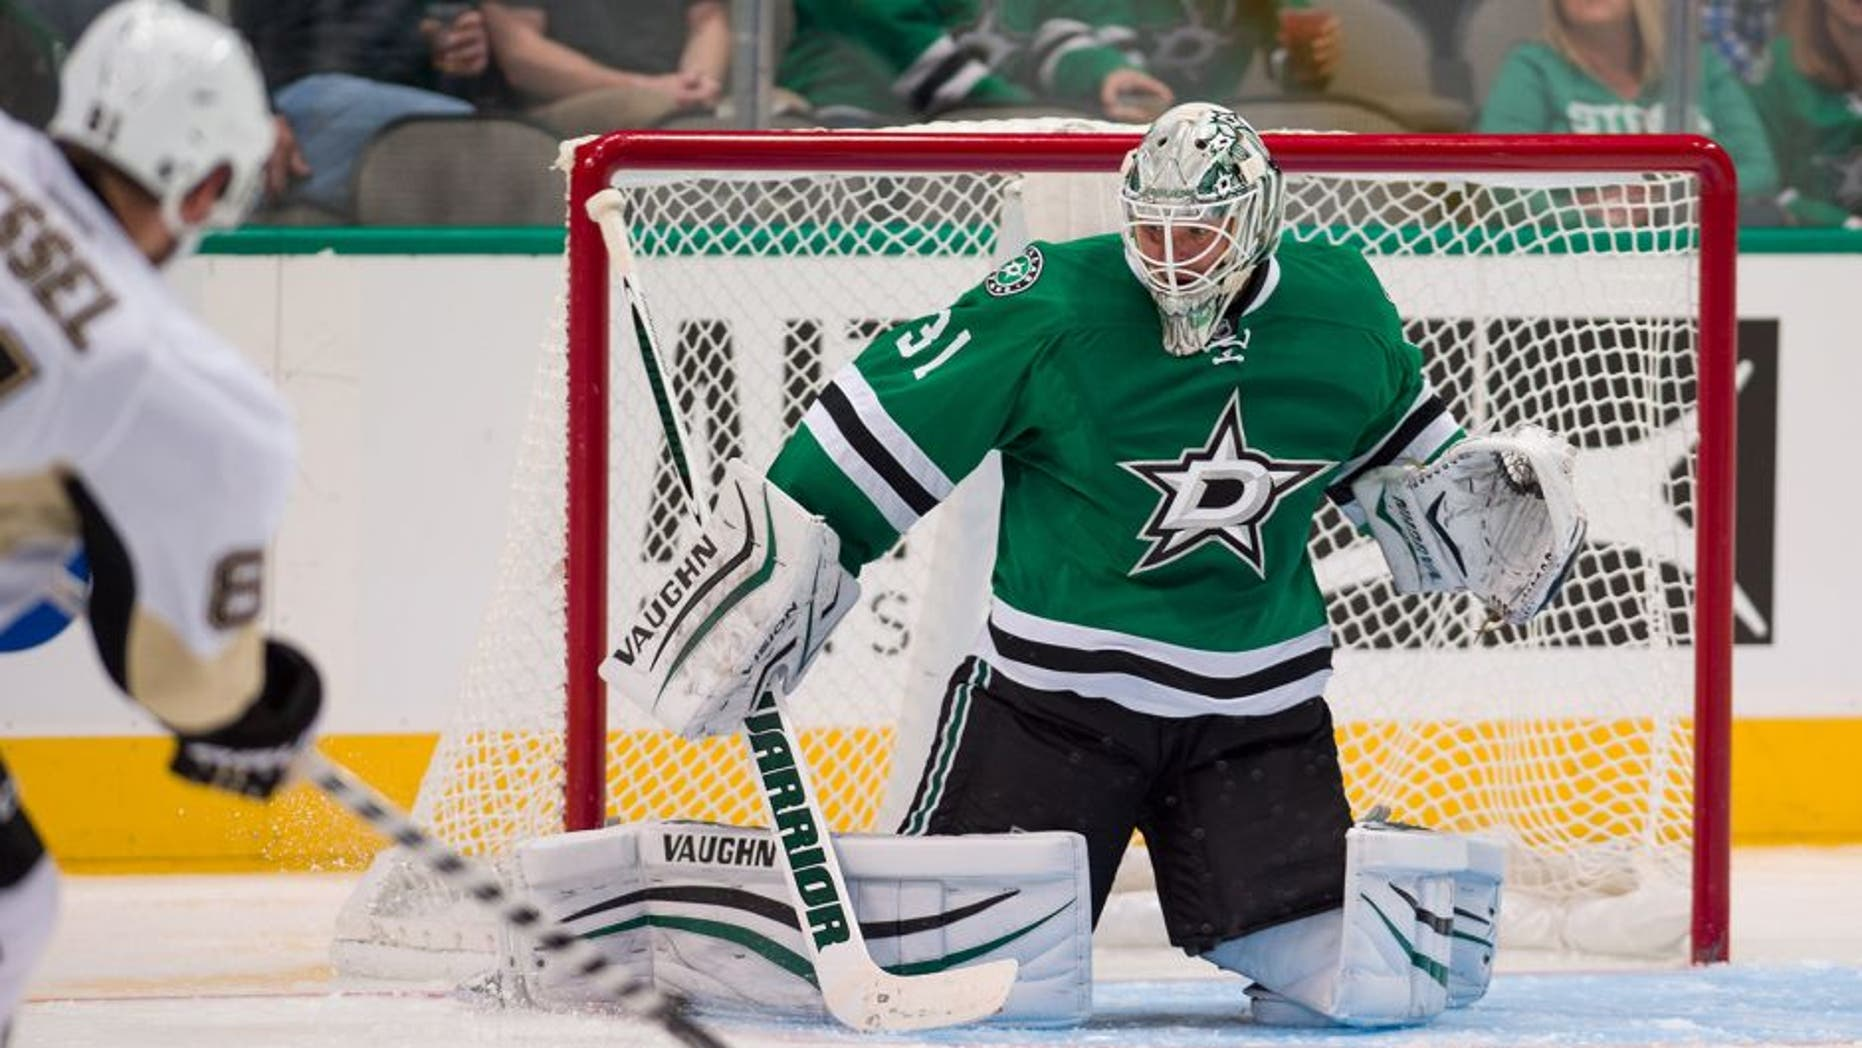 Oct 8, 2015; Dallas, TX, USA; Dallas Stars goalie Antti Niemi (31) makes a save against Pittsburgh Penguins right wing Phil Kessel (81) during the third period at American Airlines Center. The Stars won 3-0. Mandatory Credit: Jerome Miron-USA TODAY Sports